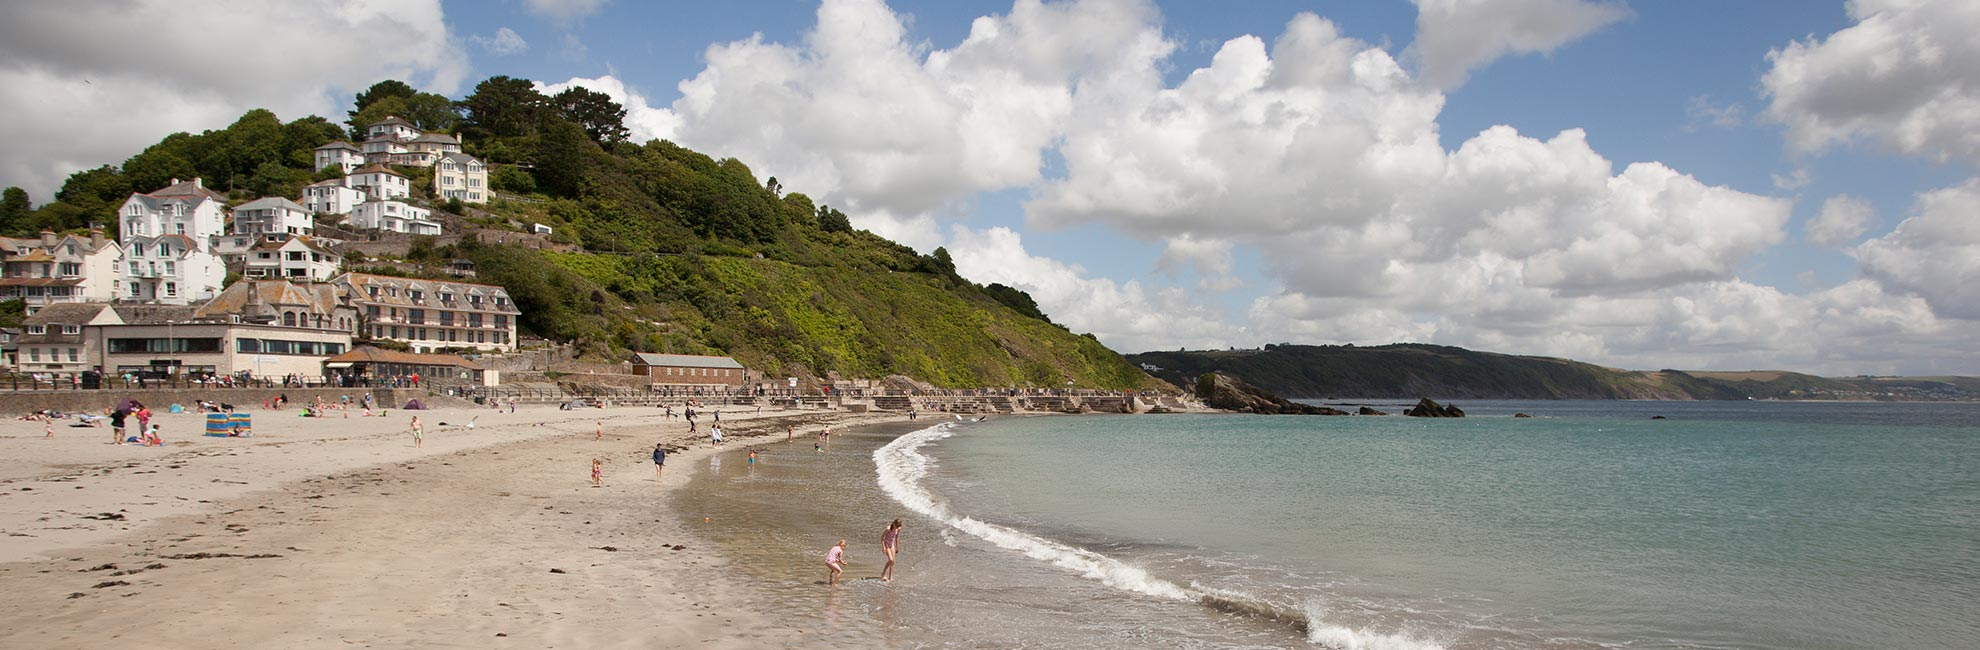 Looe Bay beach